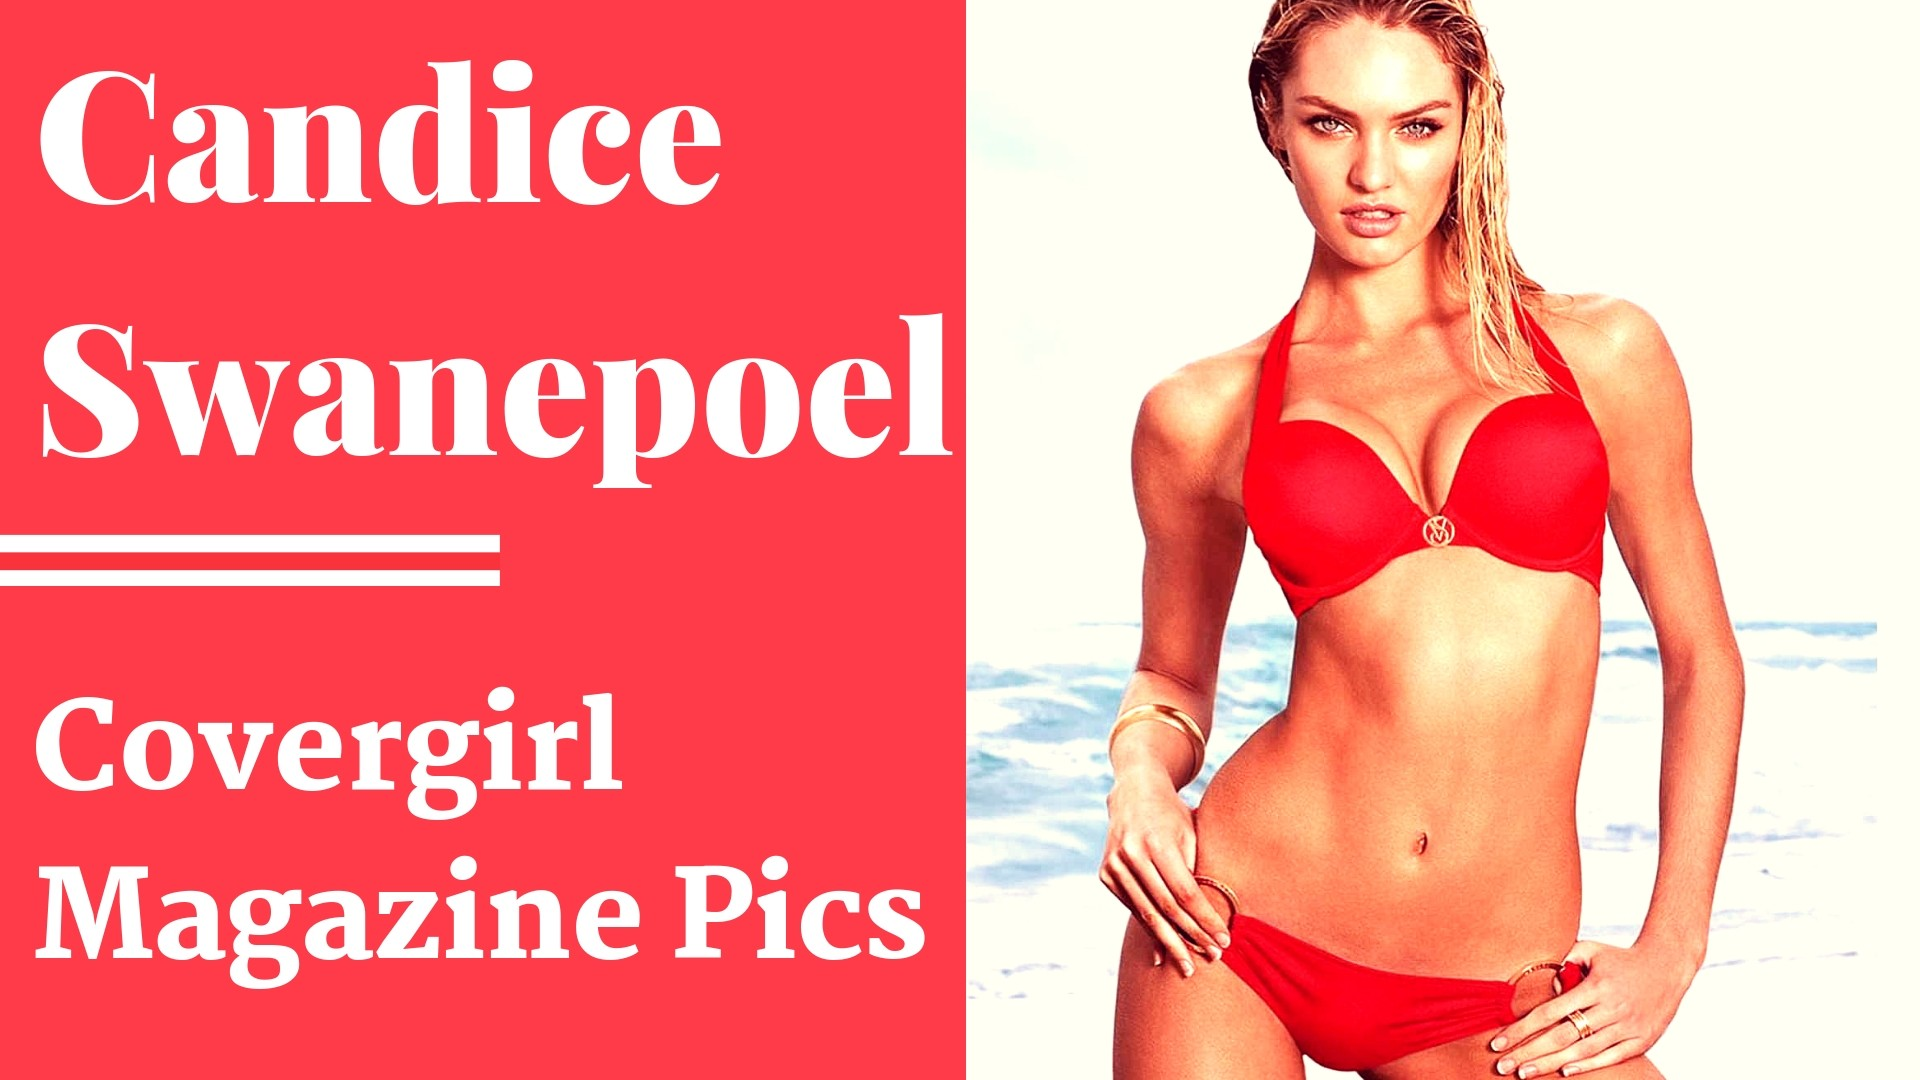 Some of the most sexiest Candice Swanepoel Lingerie Photos ever from CoverGirl Magazine